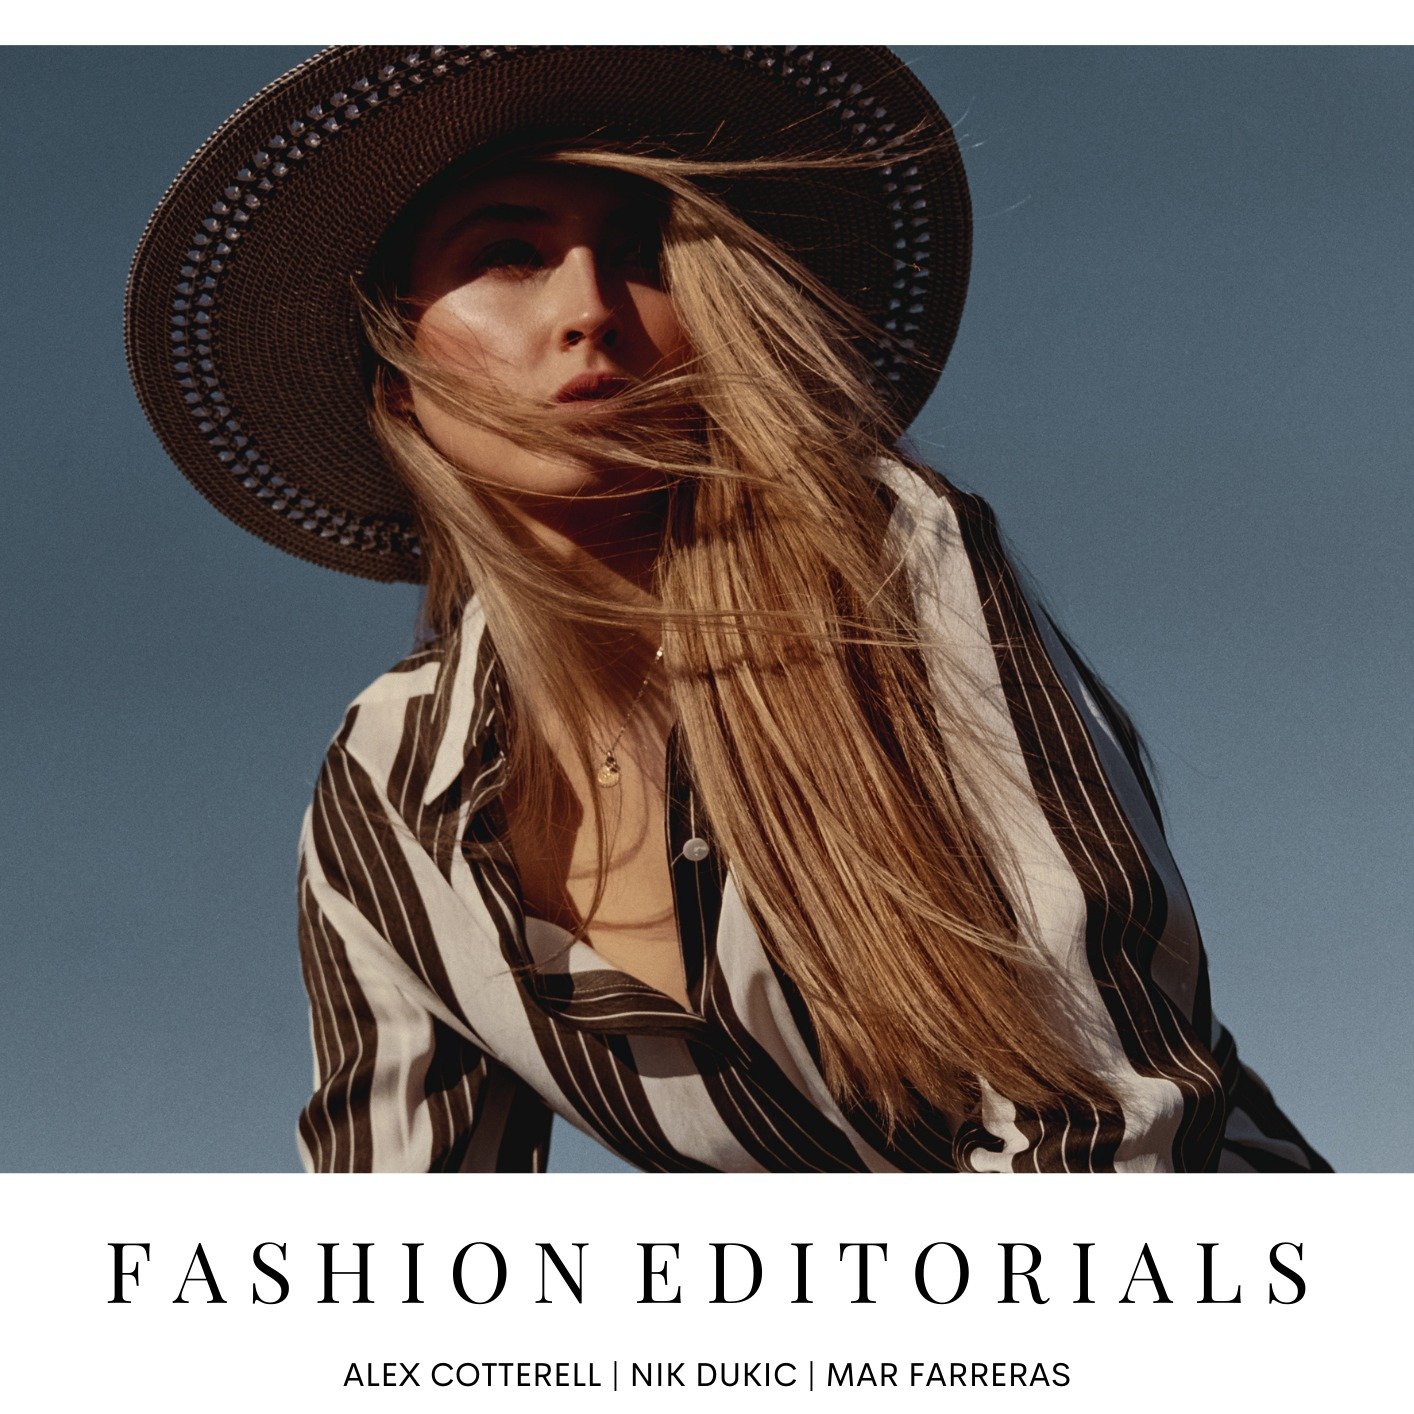 ALEX COTTERELL FOR FASHION EDITORIALS | The Models blog